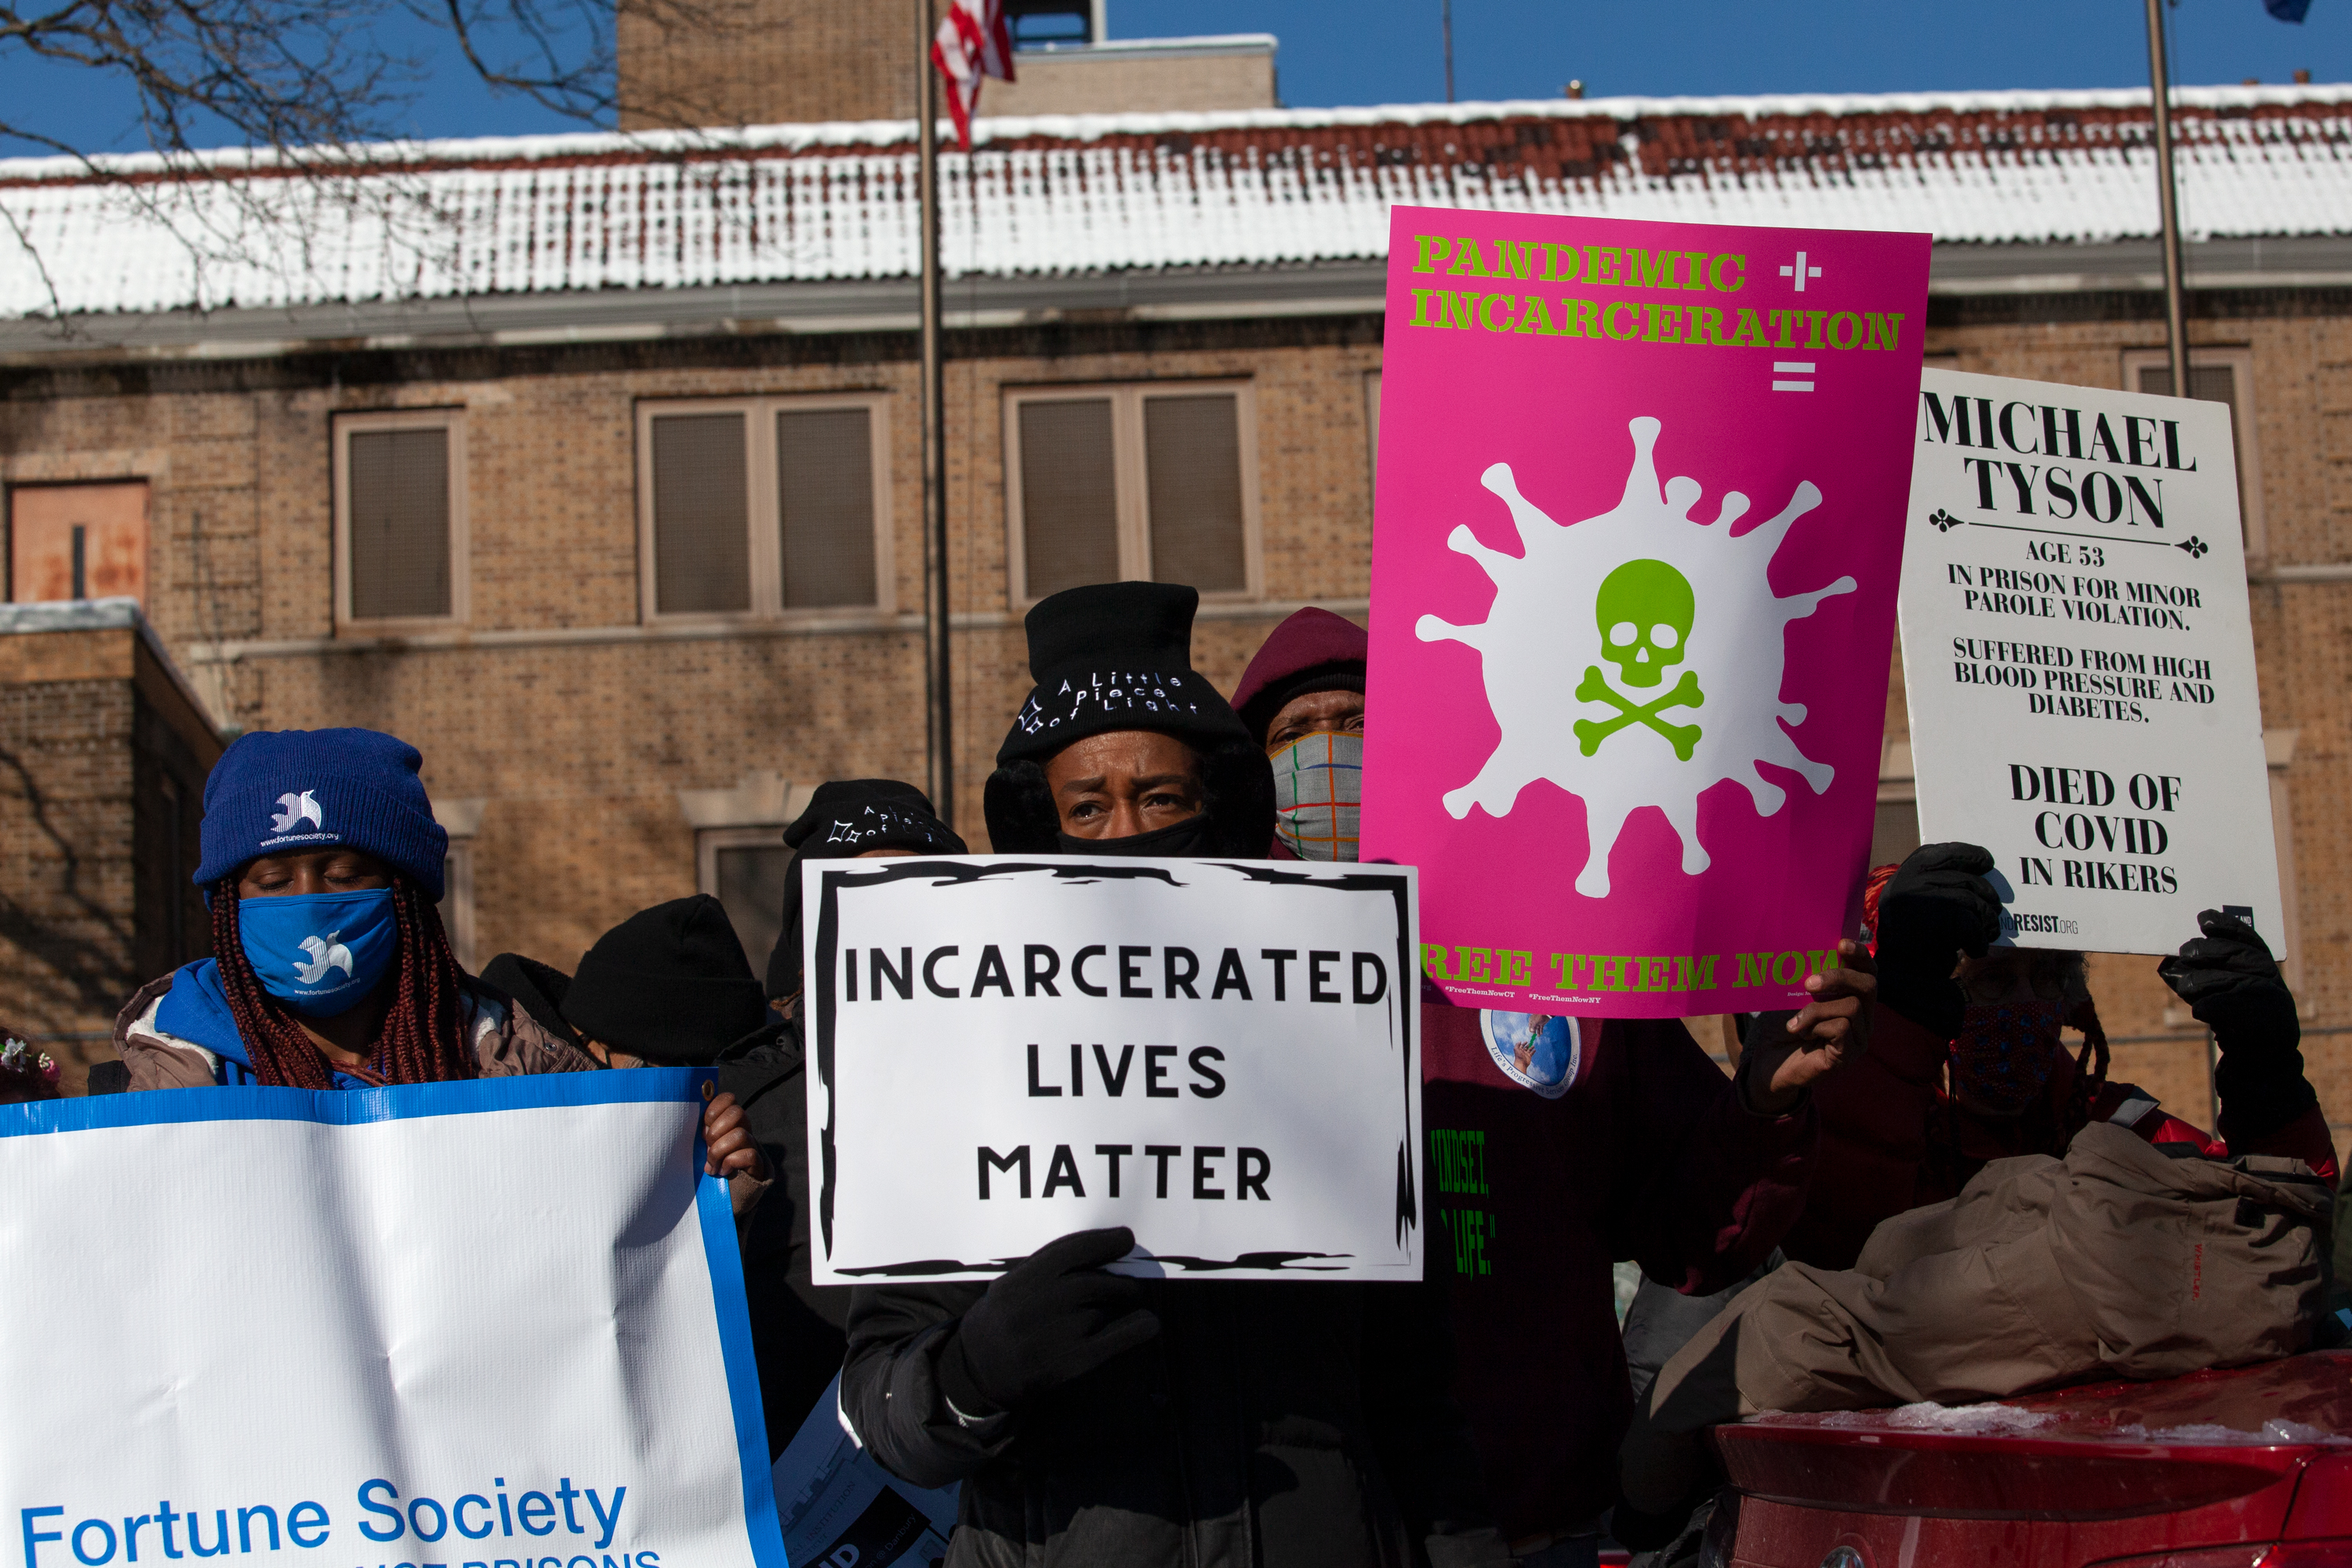 Criminal justice reform advocates protest outside Washington Height's Edgecombe Correctional Facility, calling out unsafe conditions in jails during the coronavirus outbreak, Feb. 8, 2021.